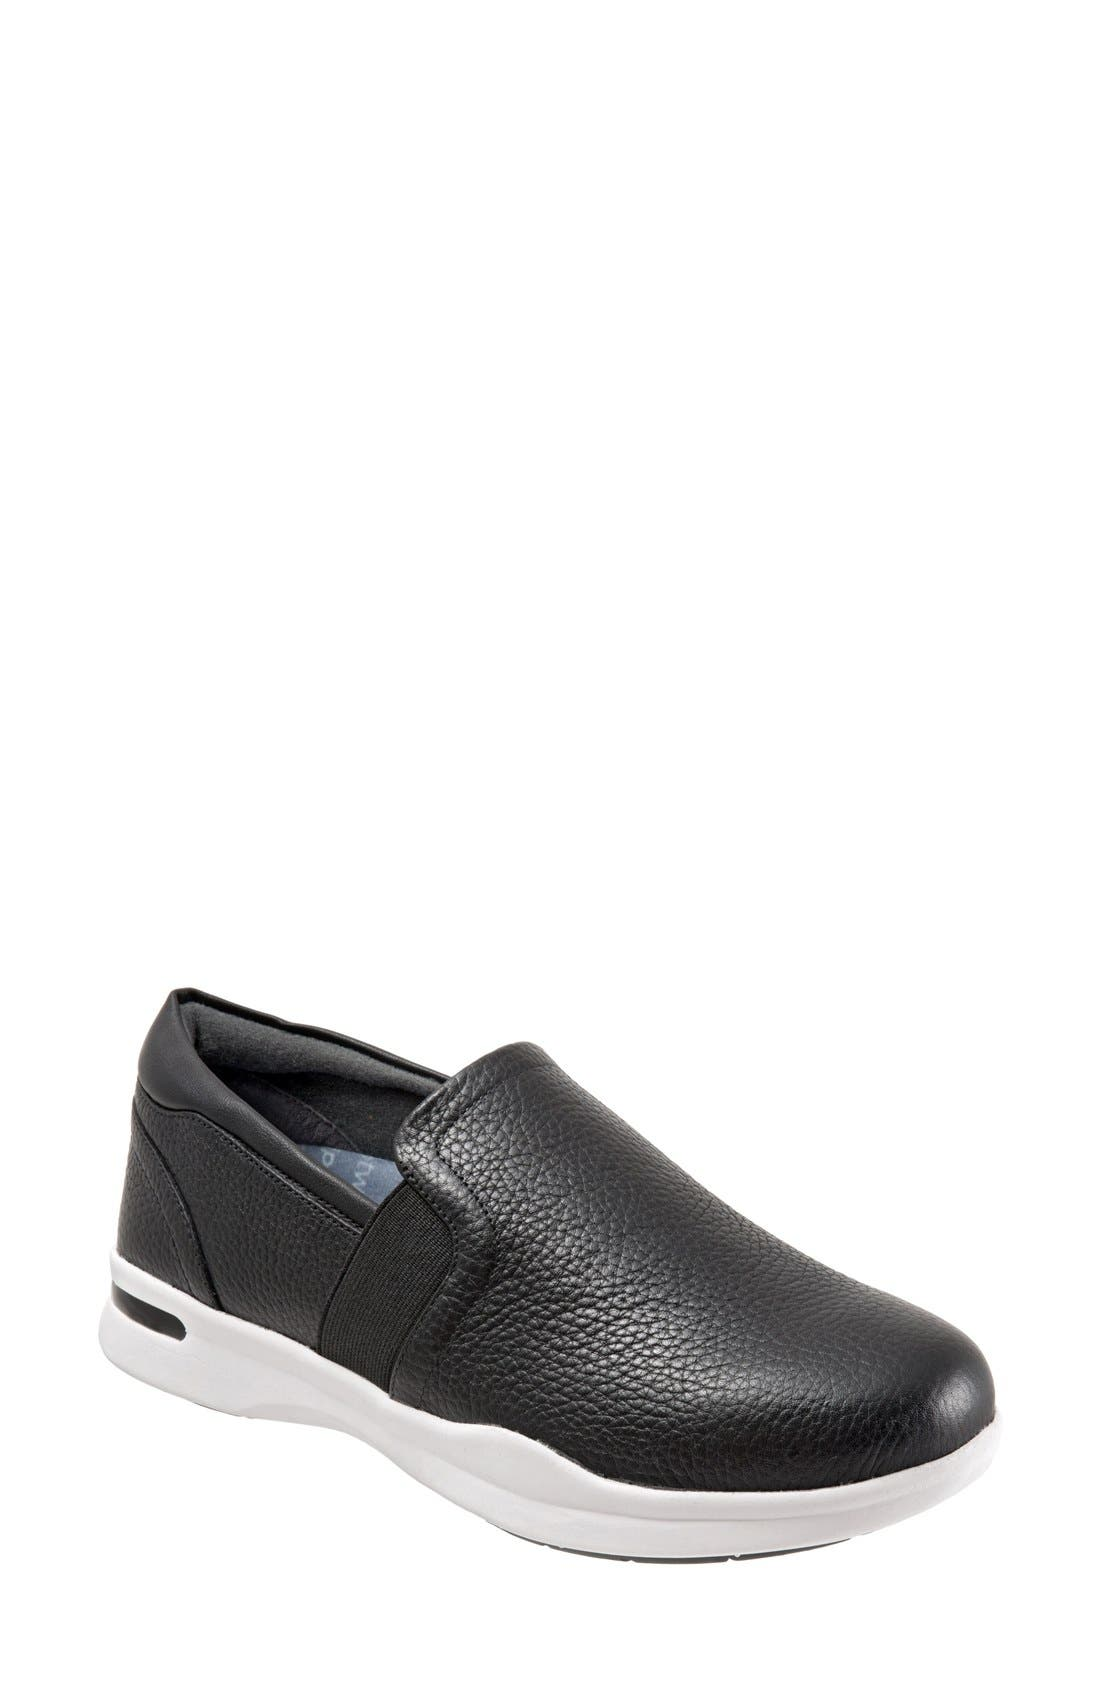 SOFTWALK<SUP>®</SUP> 'Vantage' Slip-On Sneaker, Main, color, BLACK / WHITE LEATHER